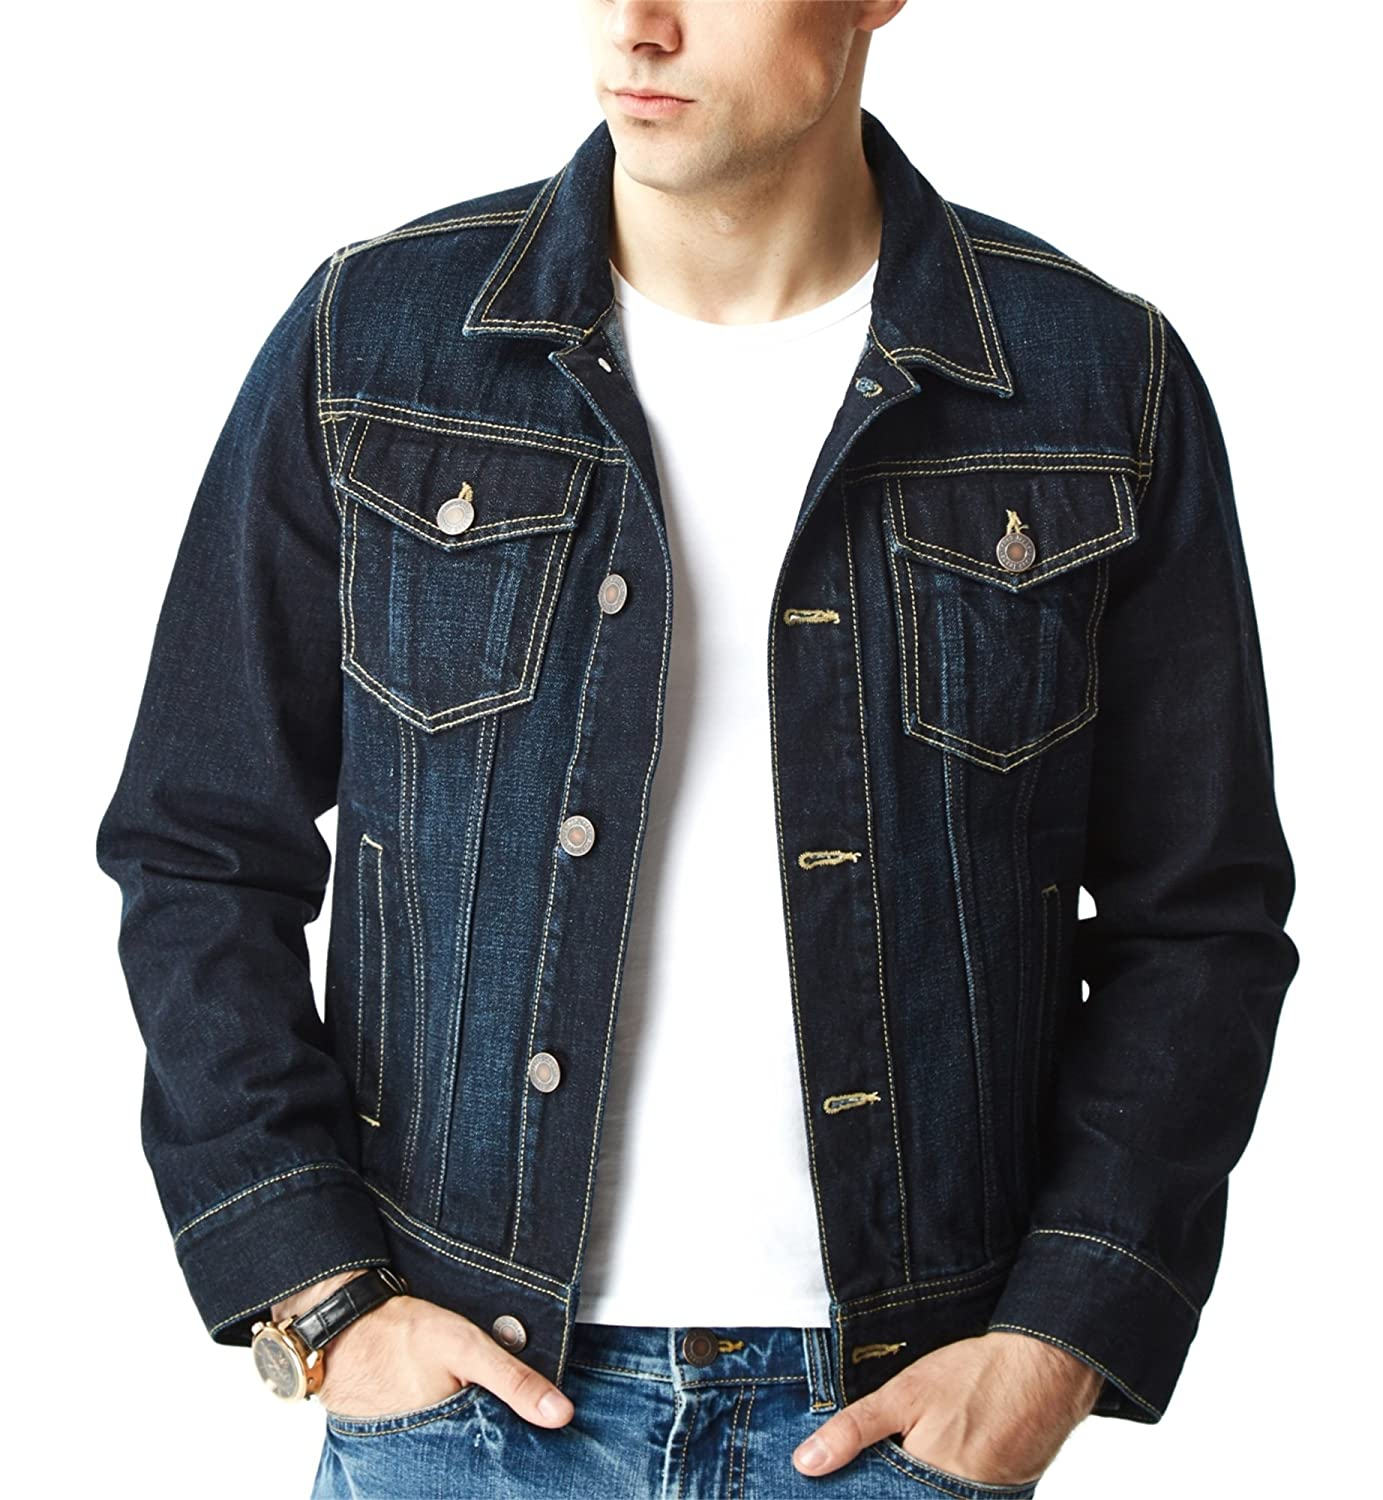 Aspop Jeans Men's Regular-Fit Jean Jacket